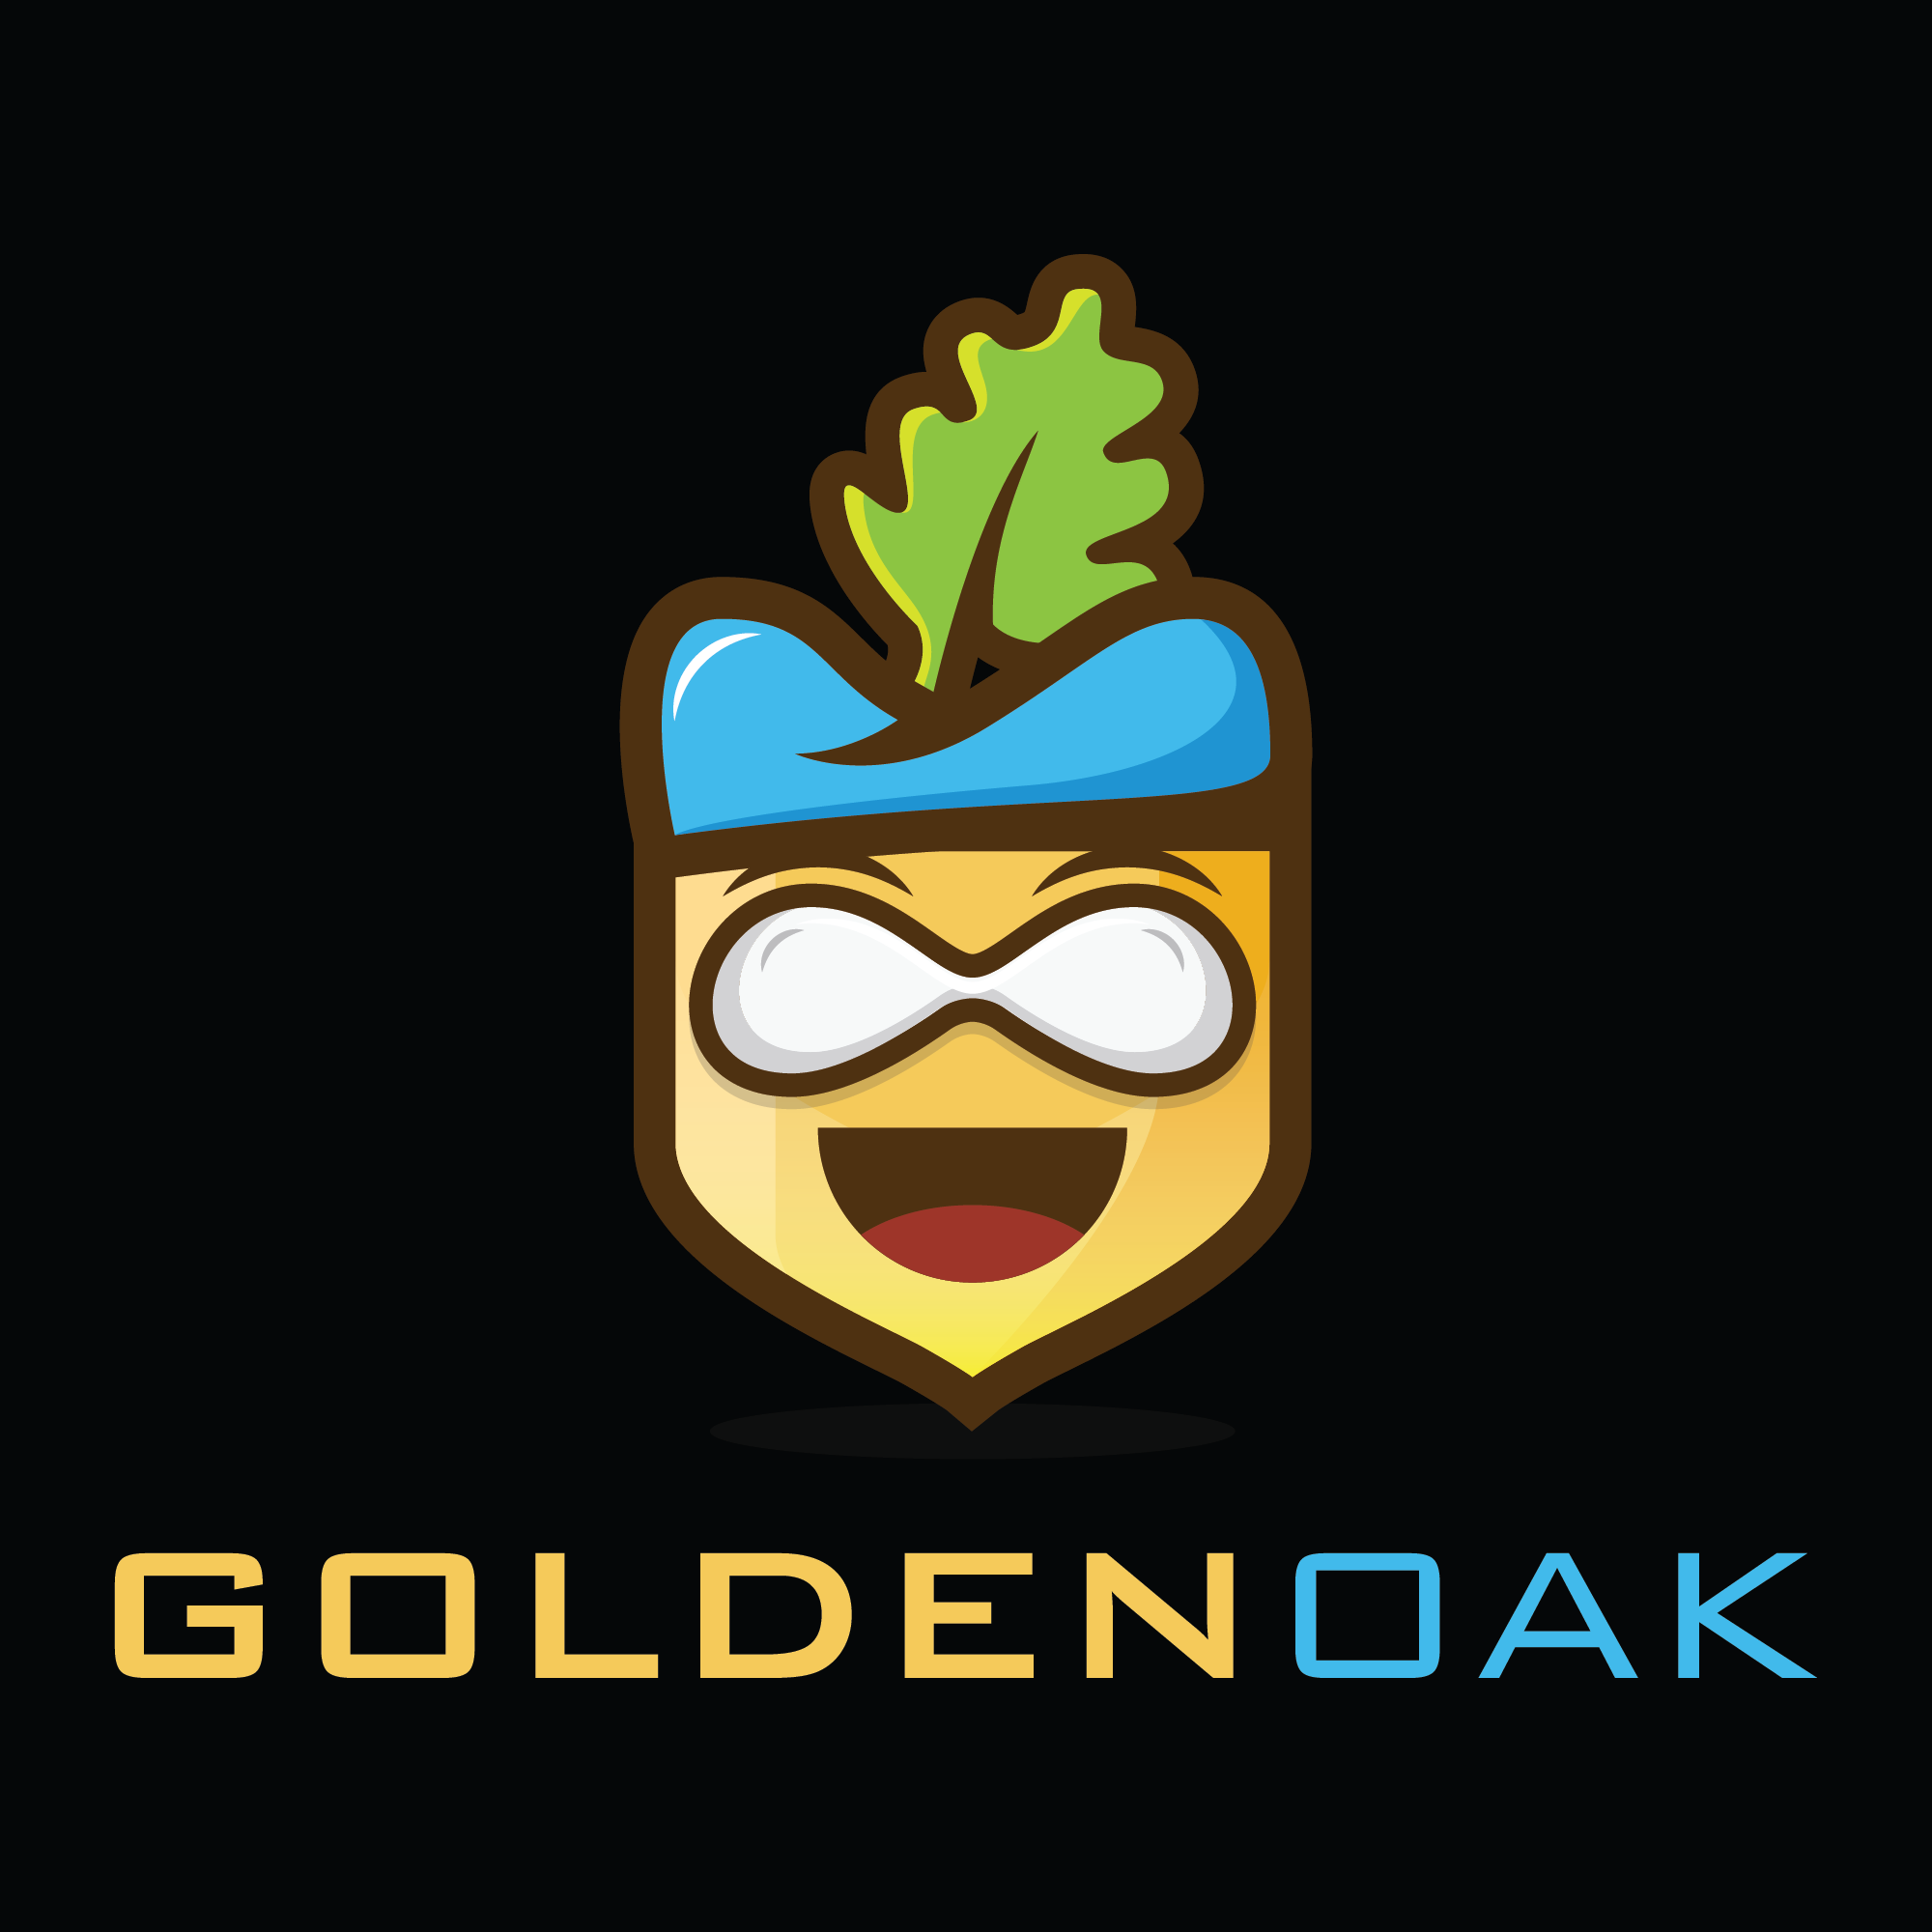 You are free for your ideas. Create a new logo for golden oak company